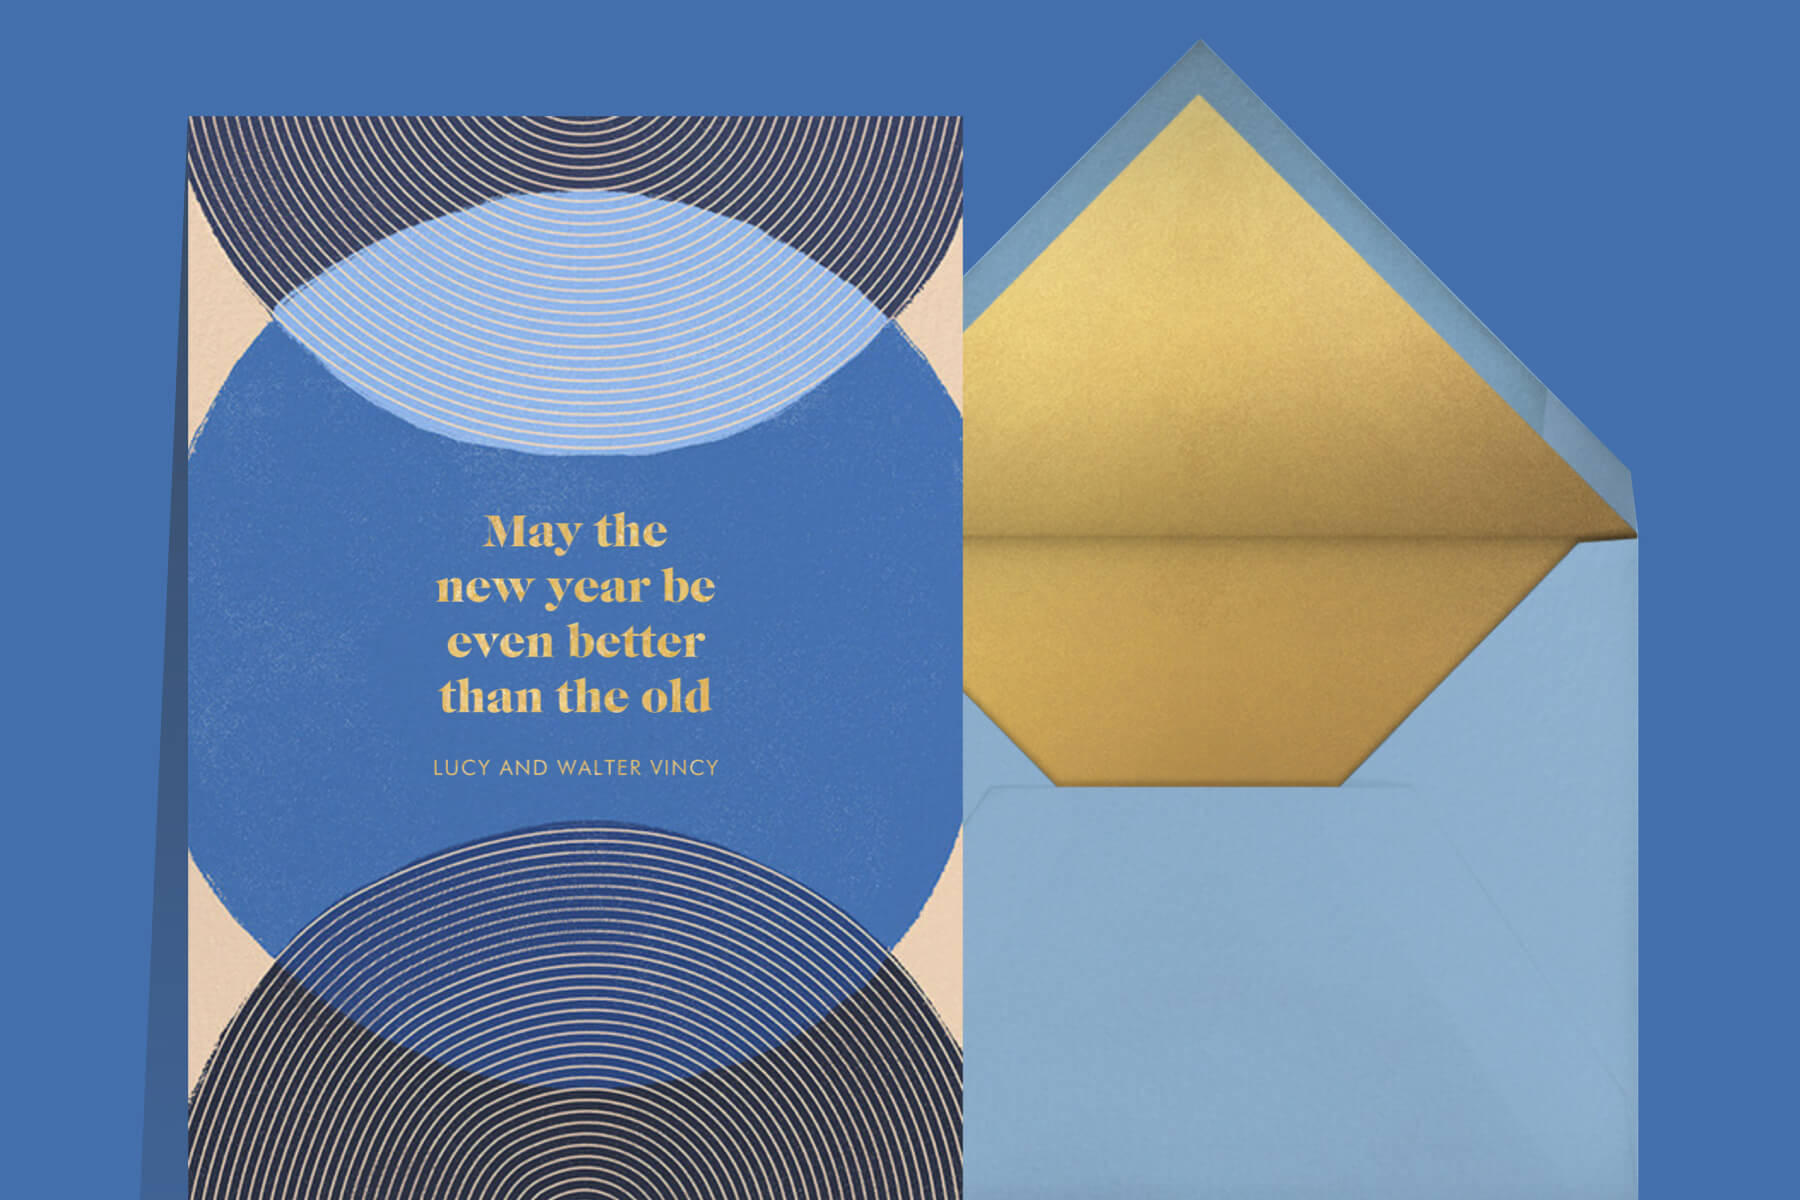 New Years quotes and messages featuring a blue and gold New Years greeting card from Paperless Posst